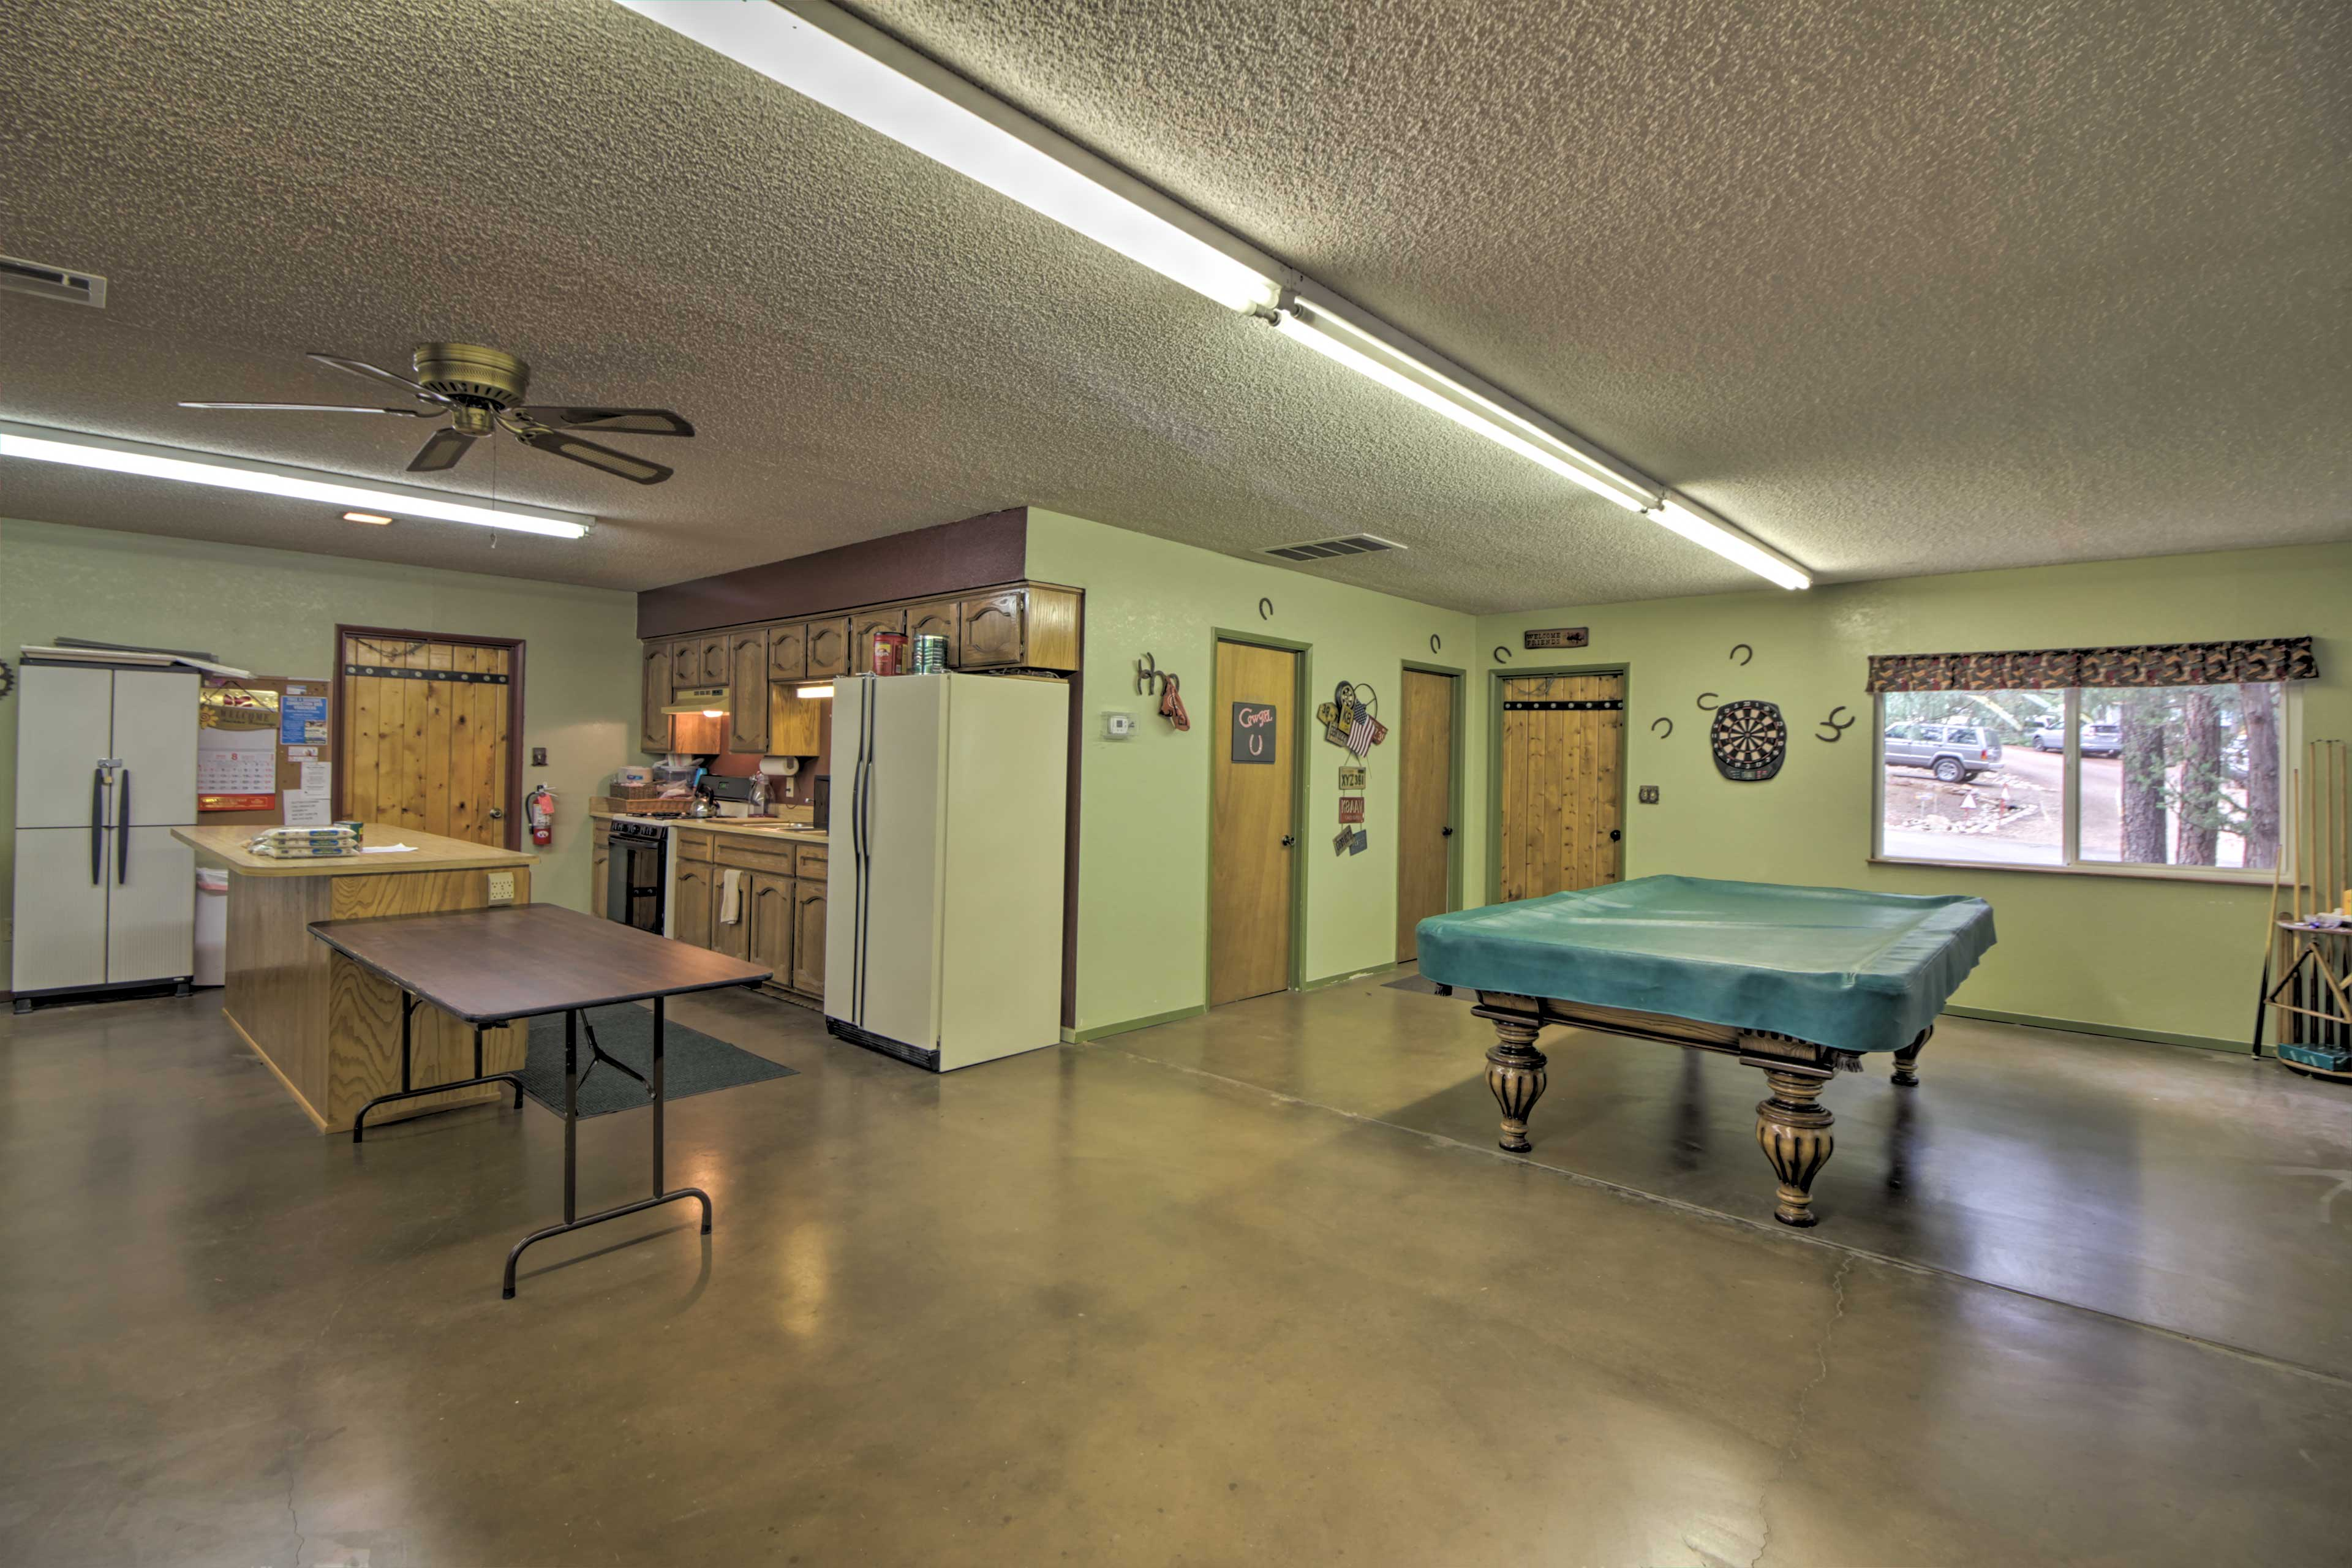 Play some pool or whip up a meal in the fully equipped kitchen.